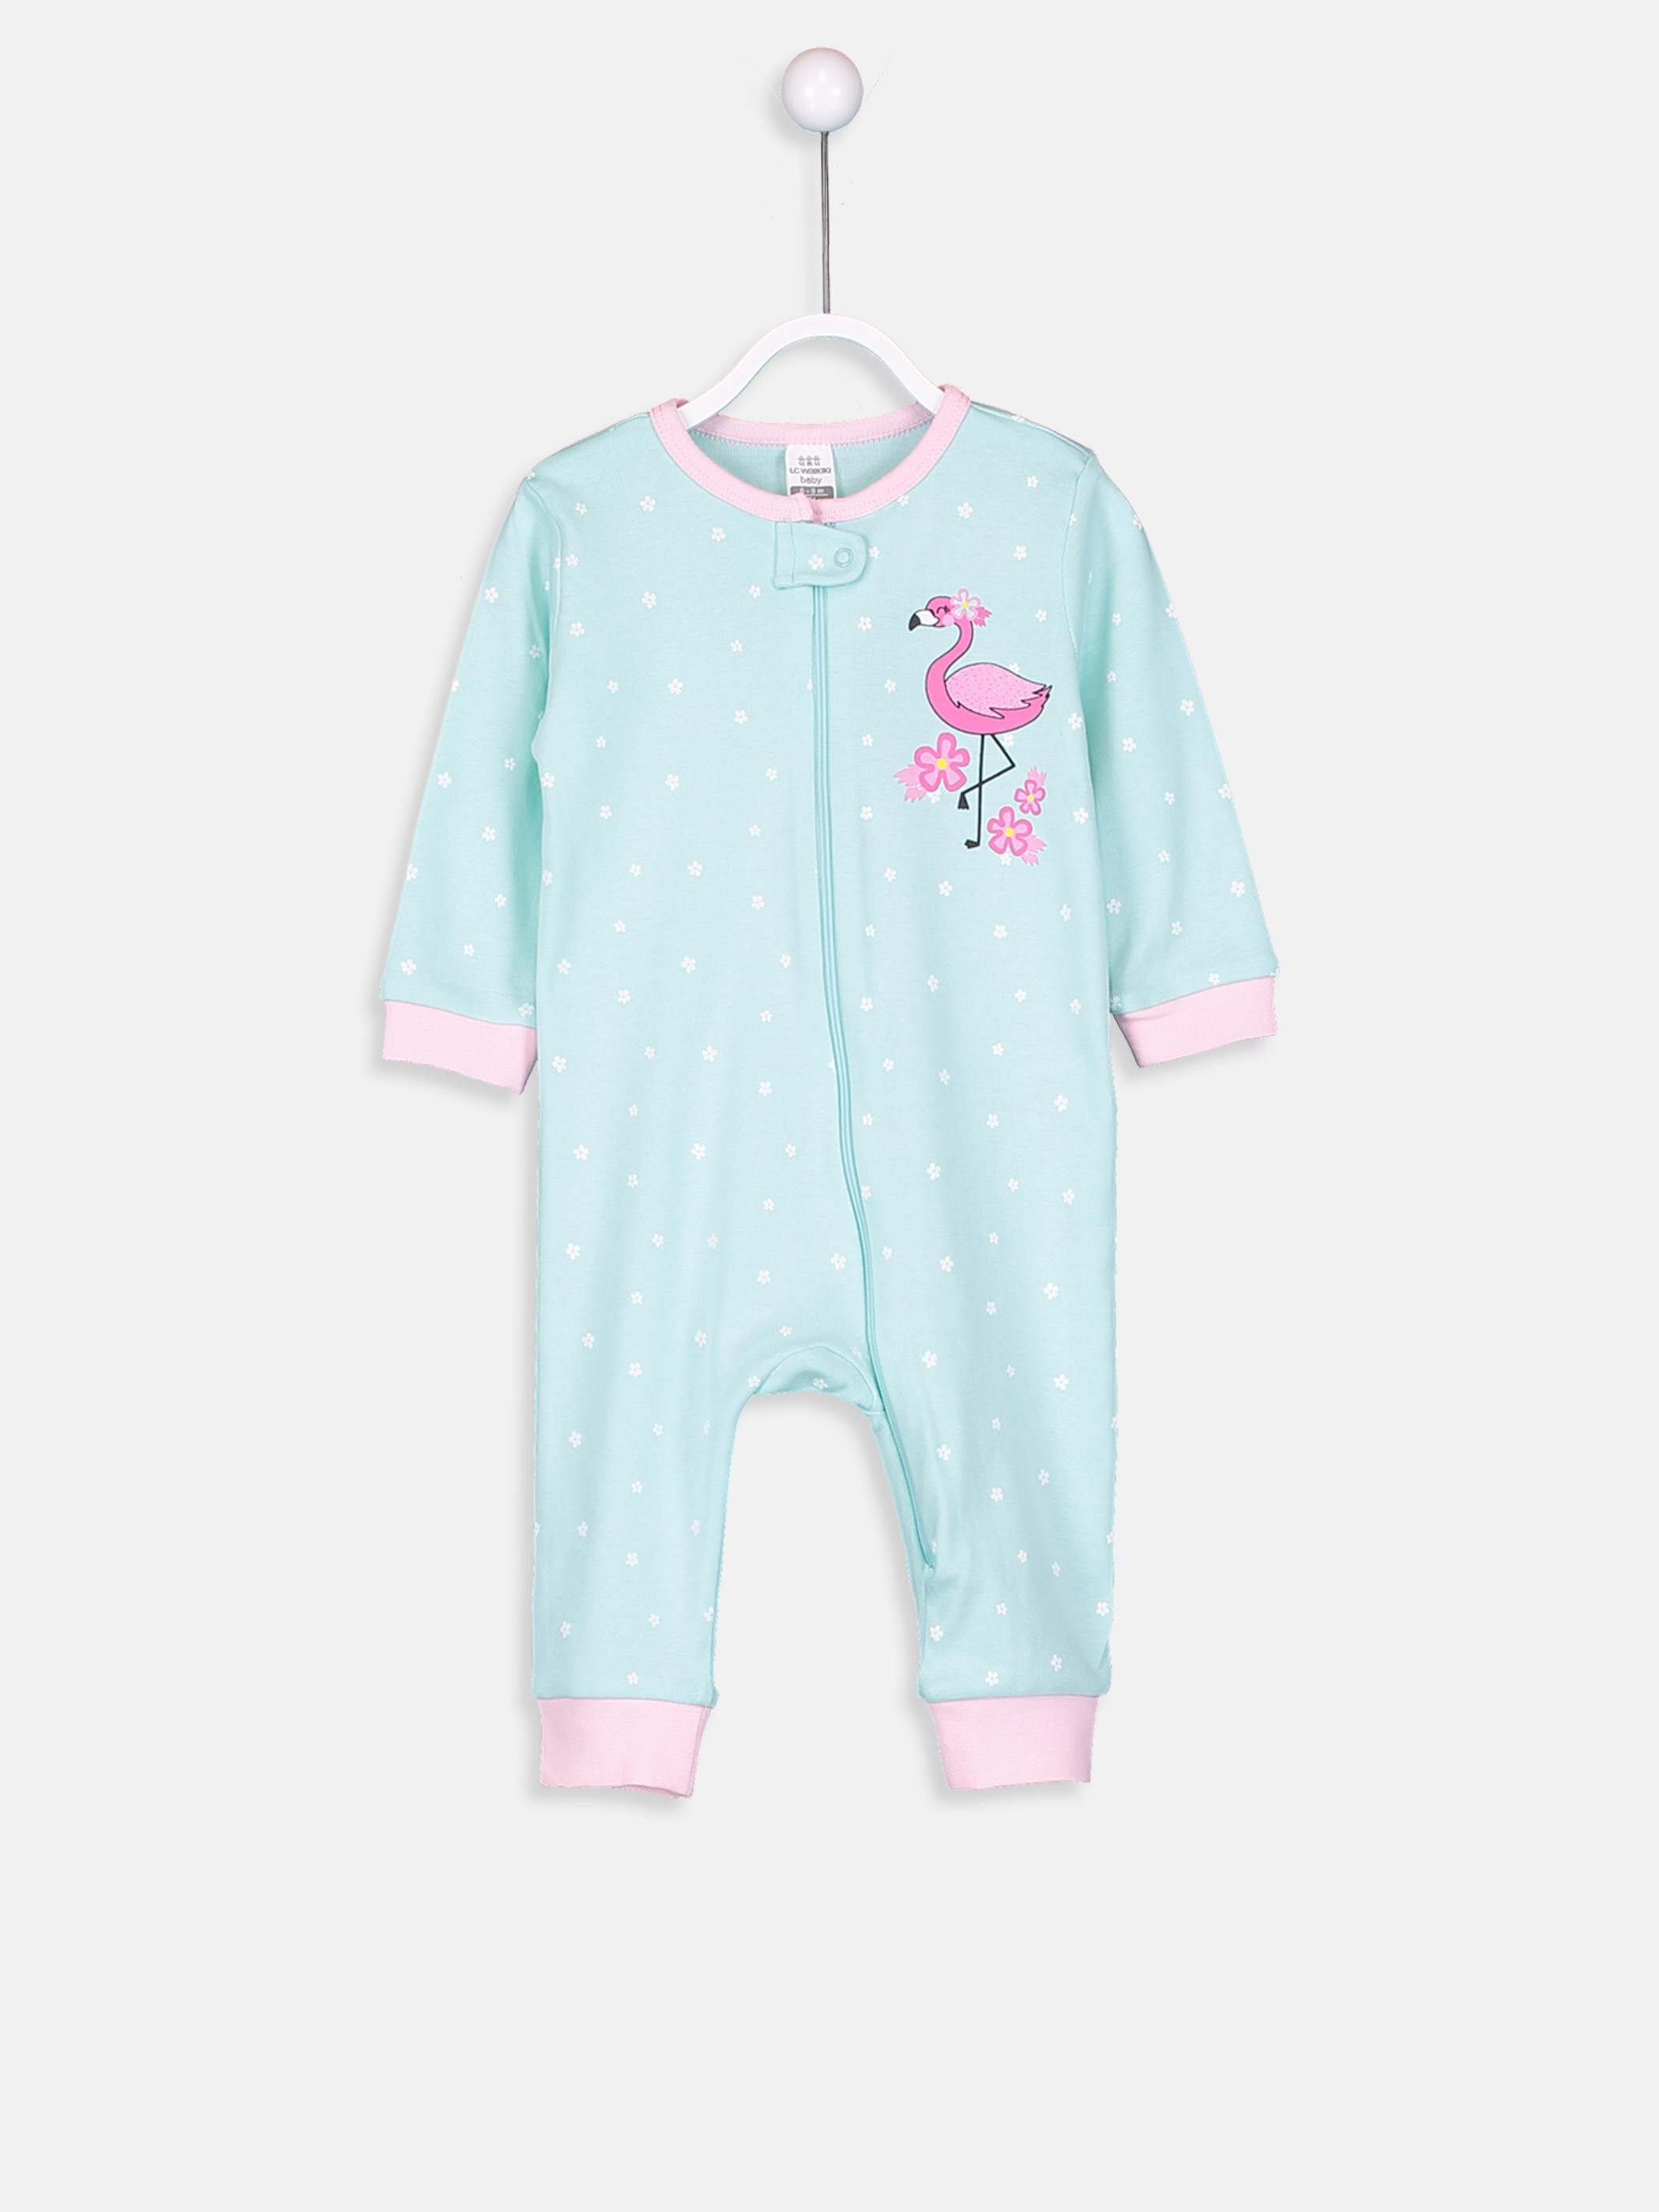 GREEN - Baby Girl's Figured Cotton Jumpsuit - 9S1976Z1